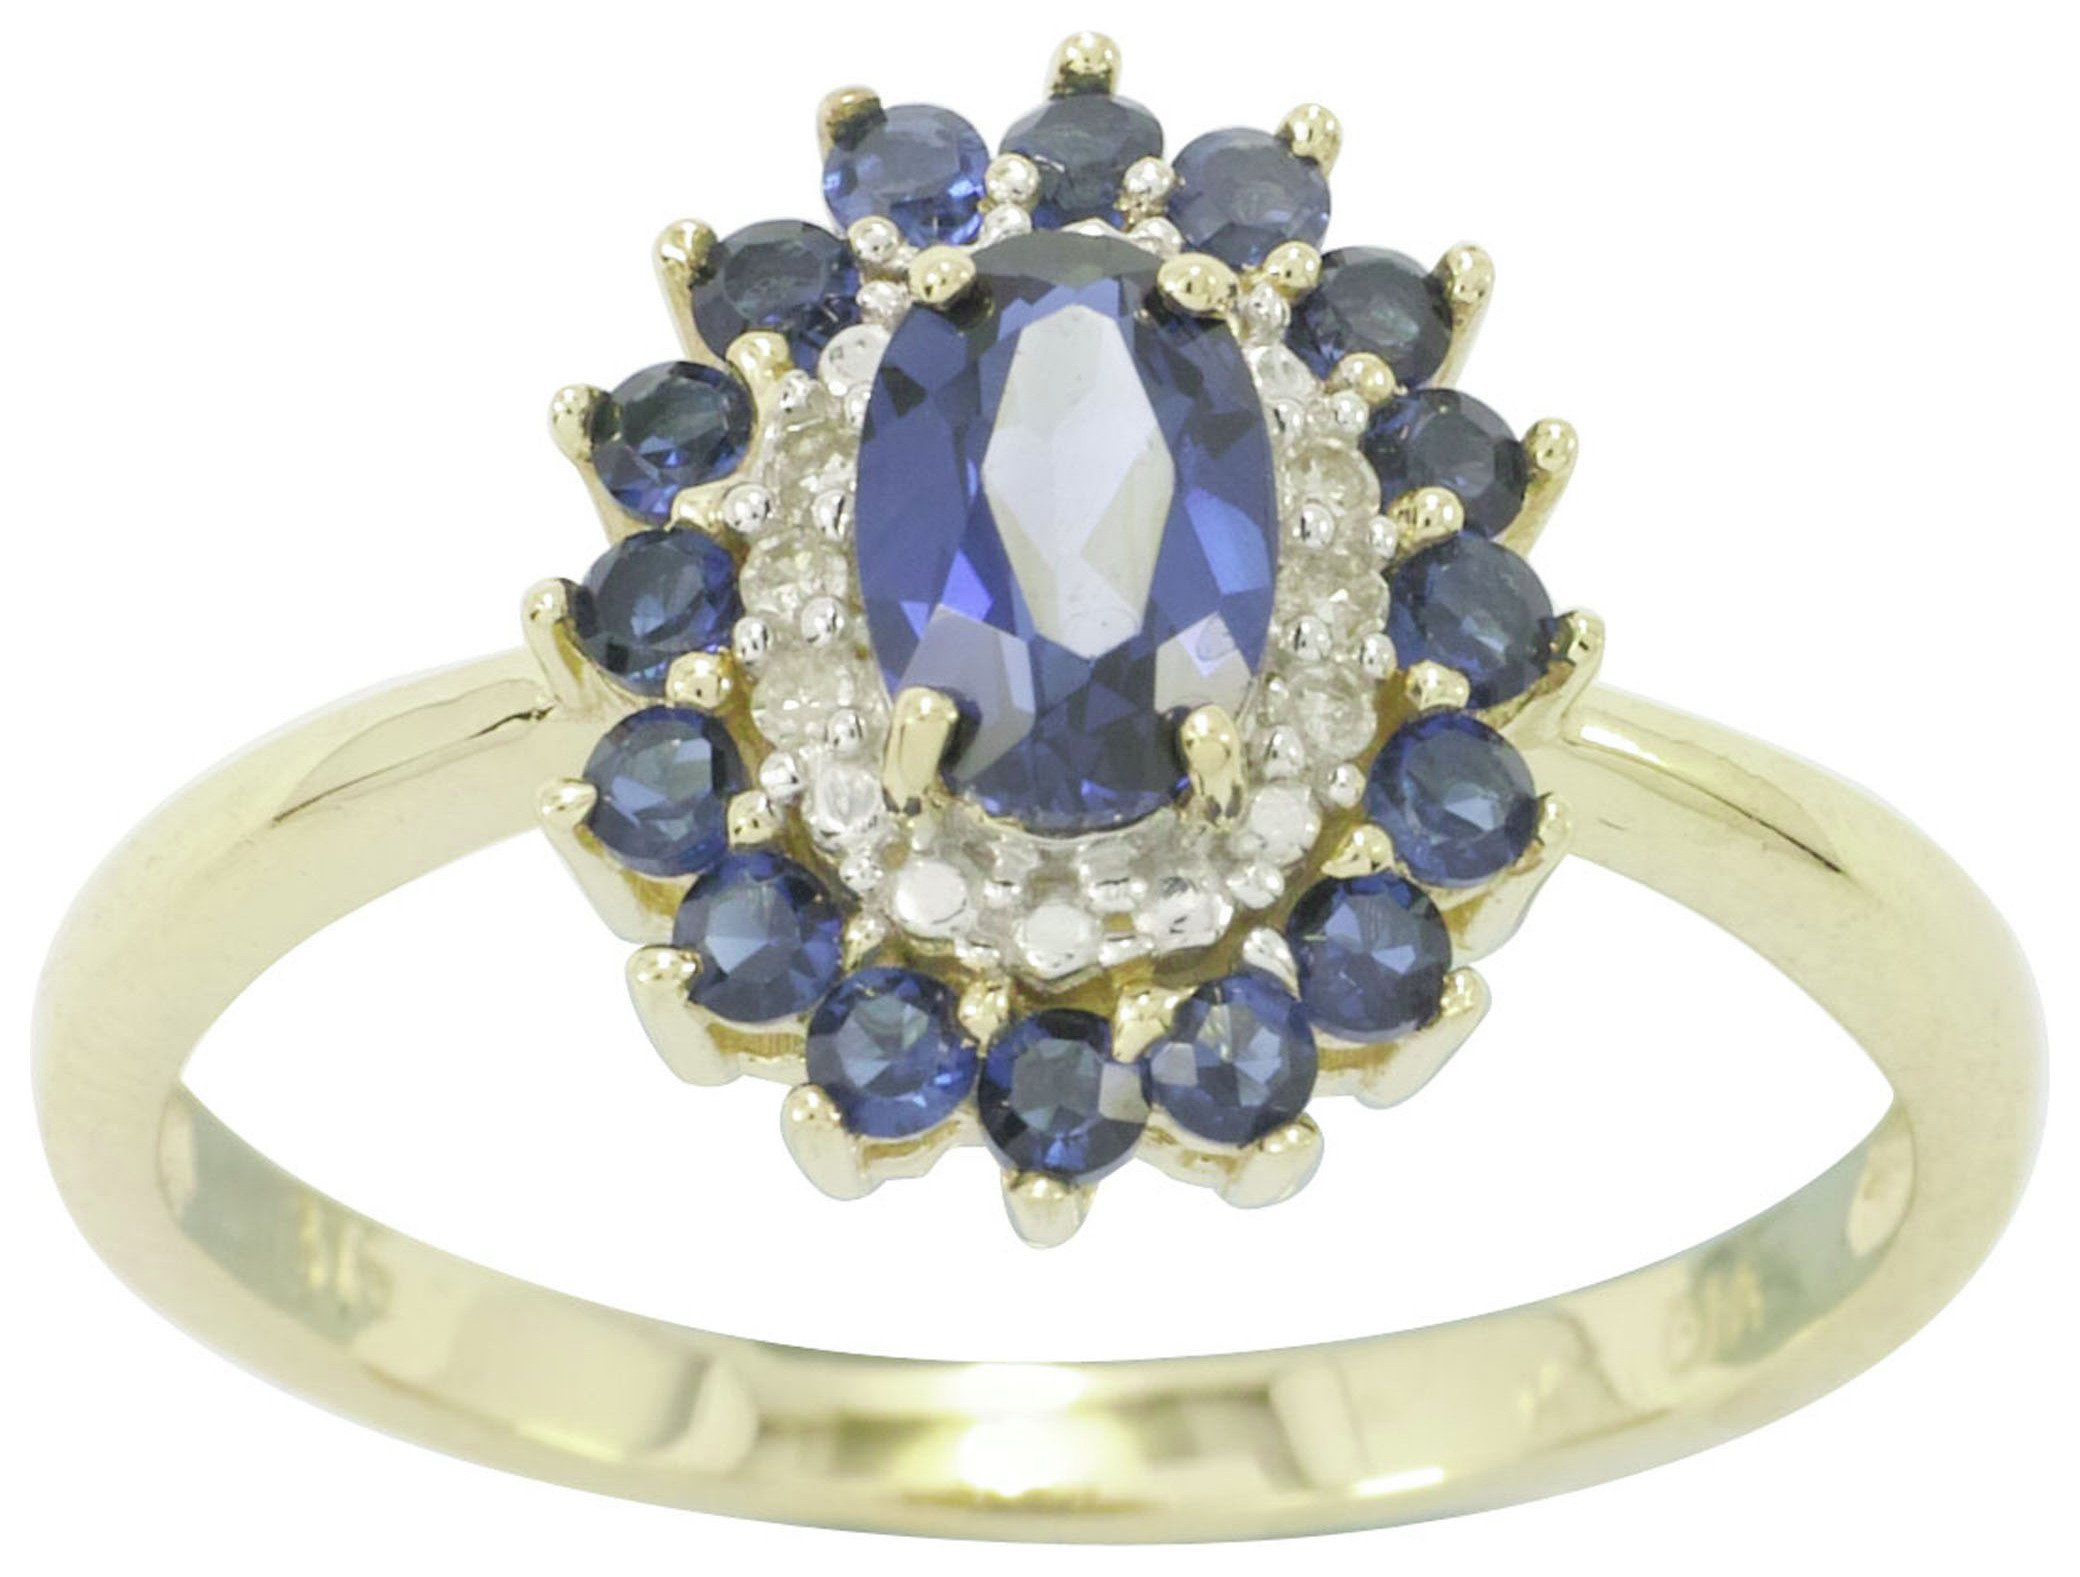 Buy 9ct Yellow Gold Sapphire & Diamond Cluster Ring Size K at